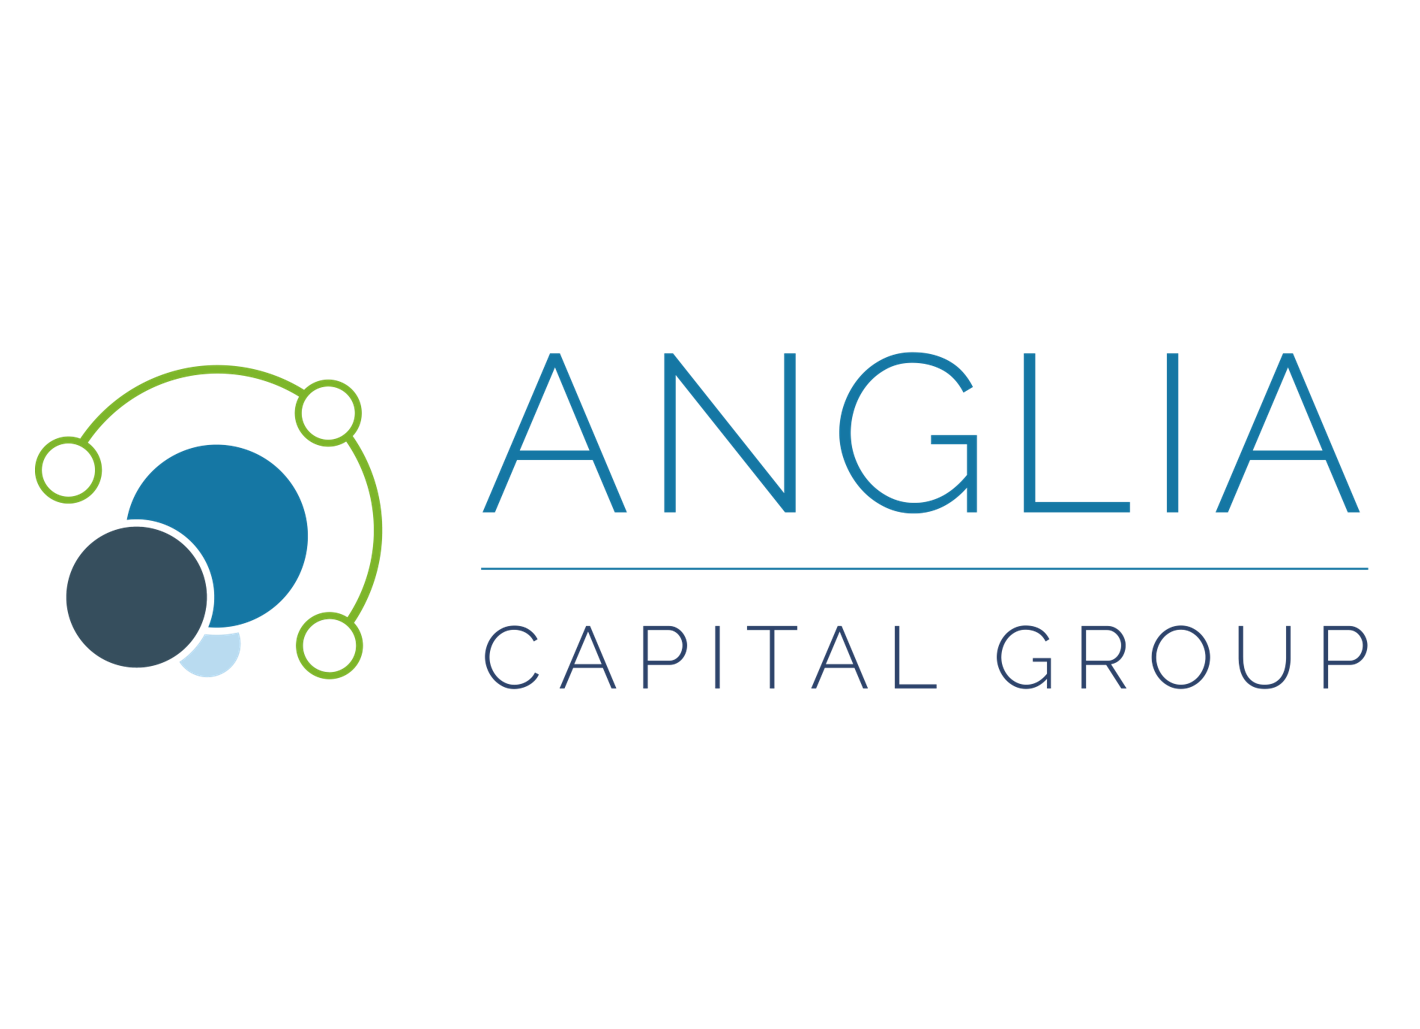 Anglia Capital Group's members support Essex-based WYSPR to disrupt the marketing industry with £375,000 of equity investment